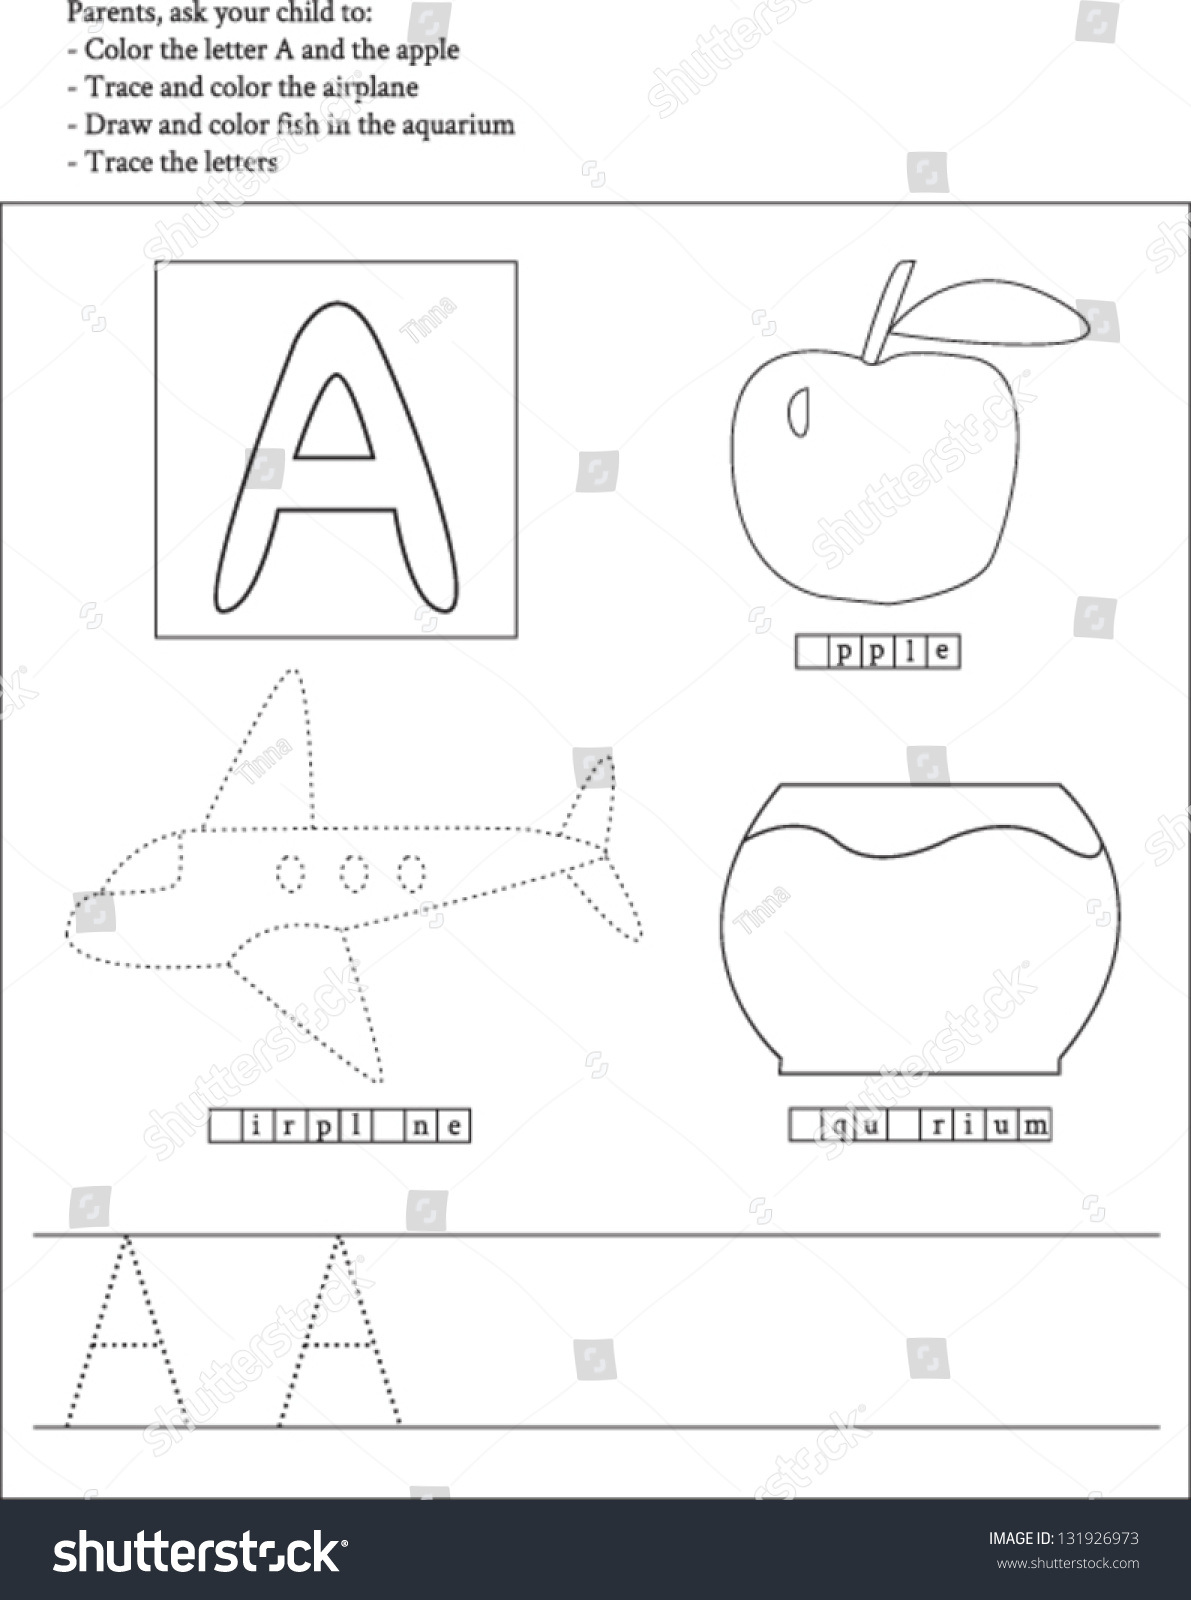 Aqurium Homework Worksheets For Preschool Aqurium Best